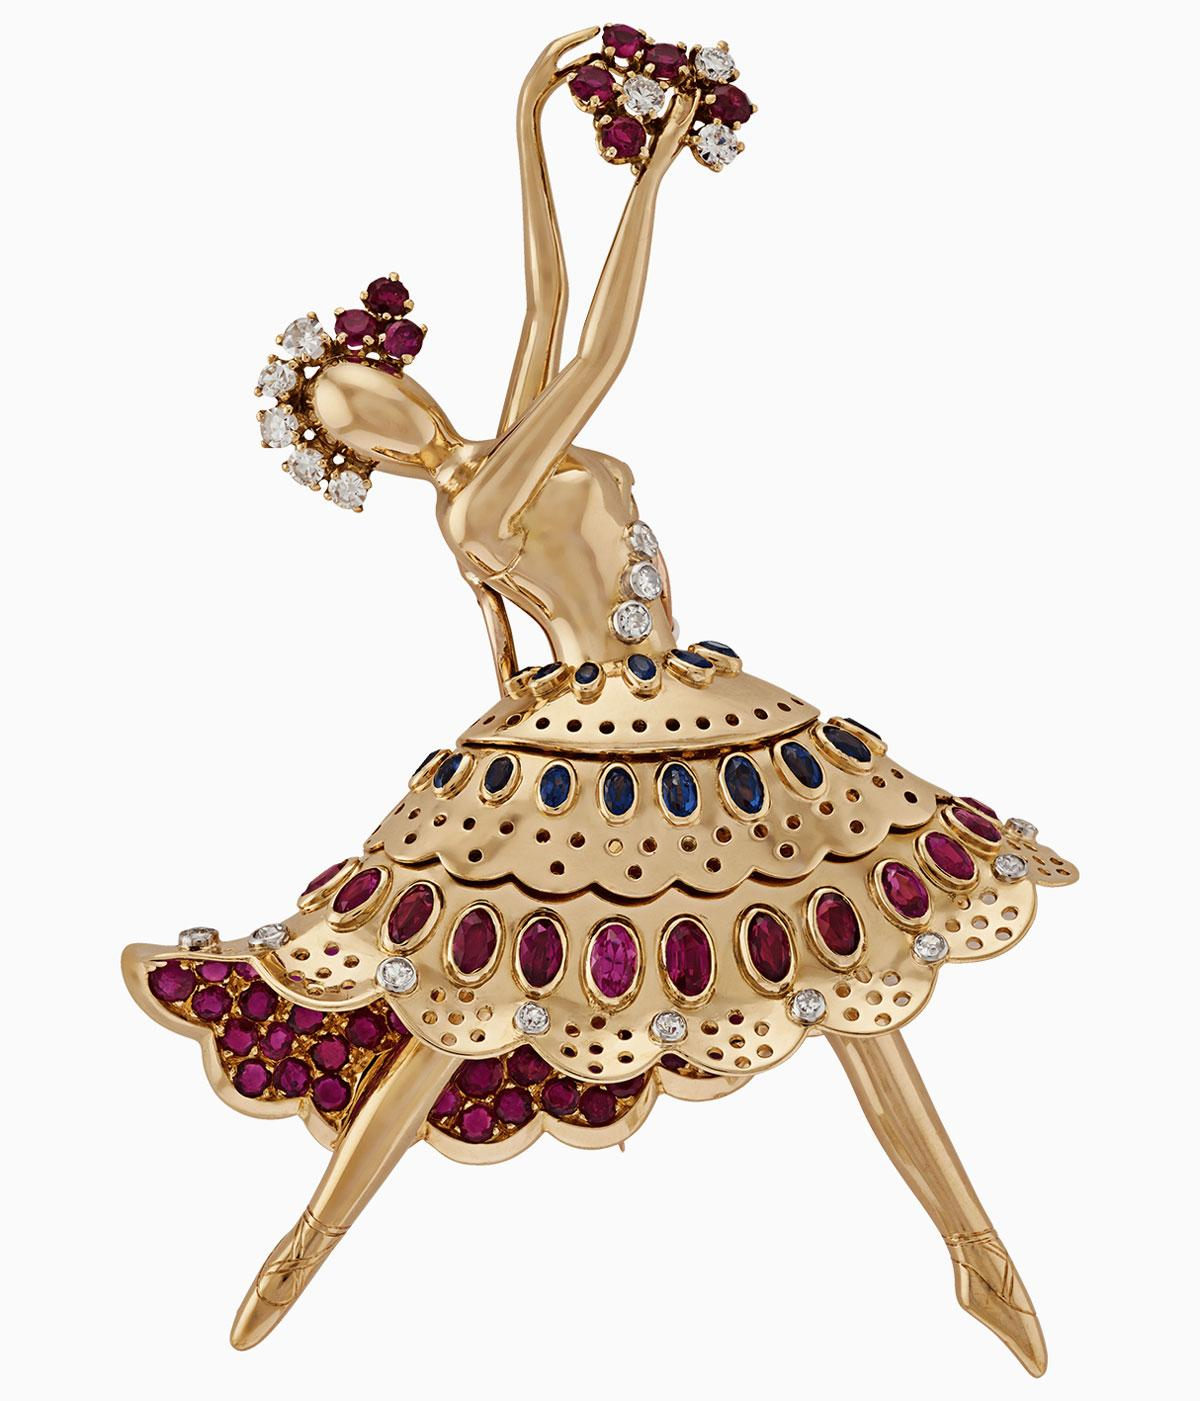 Ballerina in gold with colourful stones on her skirt